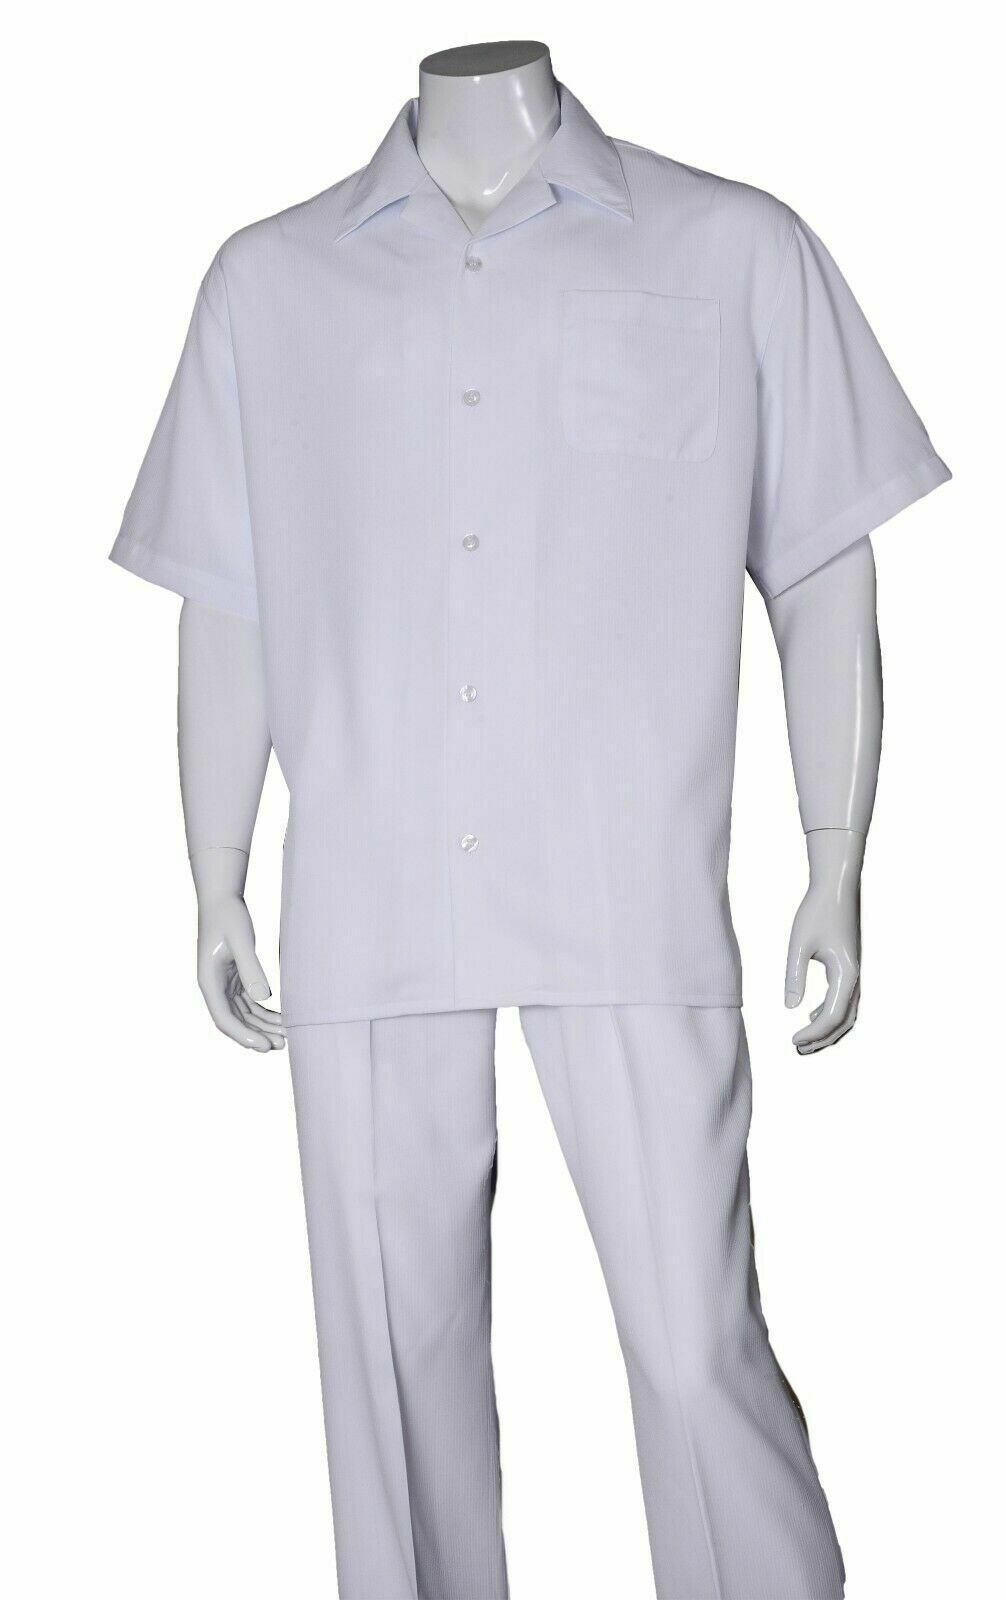 Fortino Landi Walking Set M2971-White - Church Suits For Less